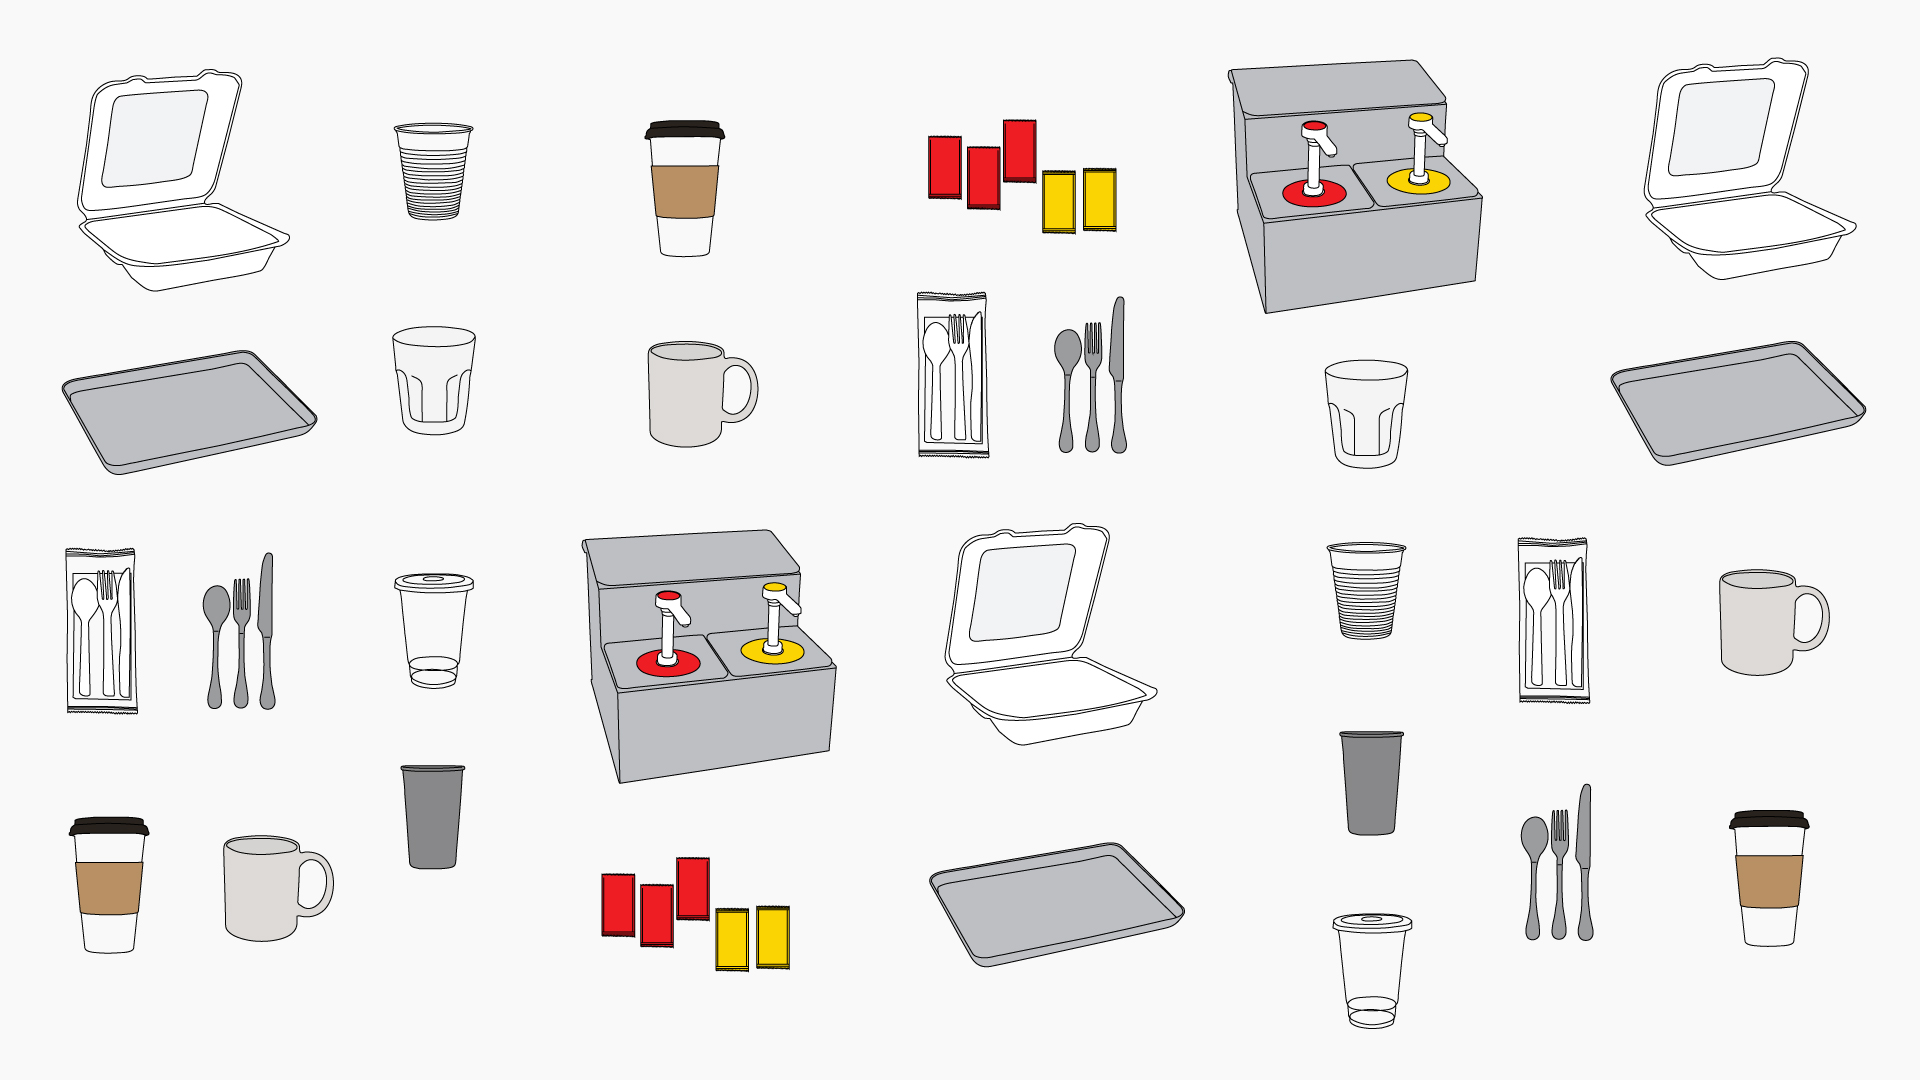 Illustration showing disposable and reusable items. Disposables include coffee cups, condiment packets, plastic utensils, takeout containers, and plastic cups. Reusable items include bulk condiment dispensers, silverware, flatware, mugs, and glasses.